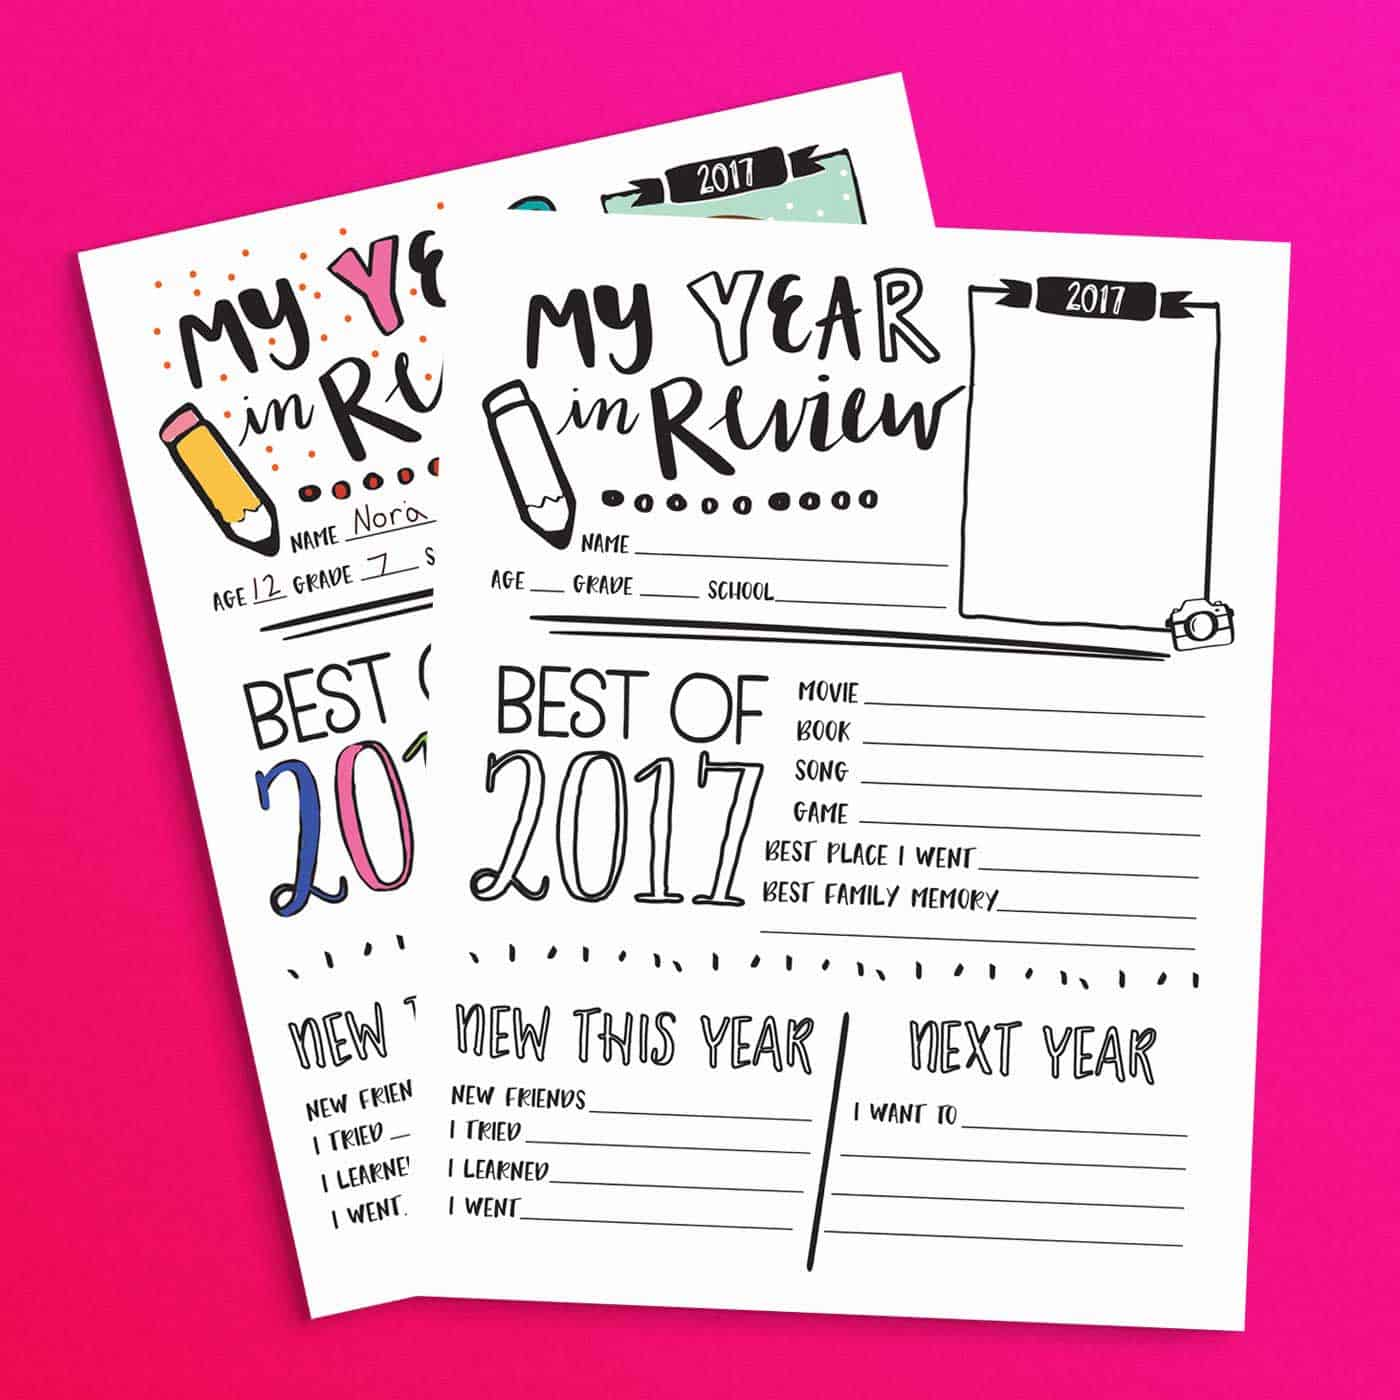 download and print this year in review printable sheet for the kids to fill out and - Kids Activities Print